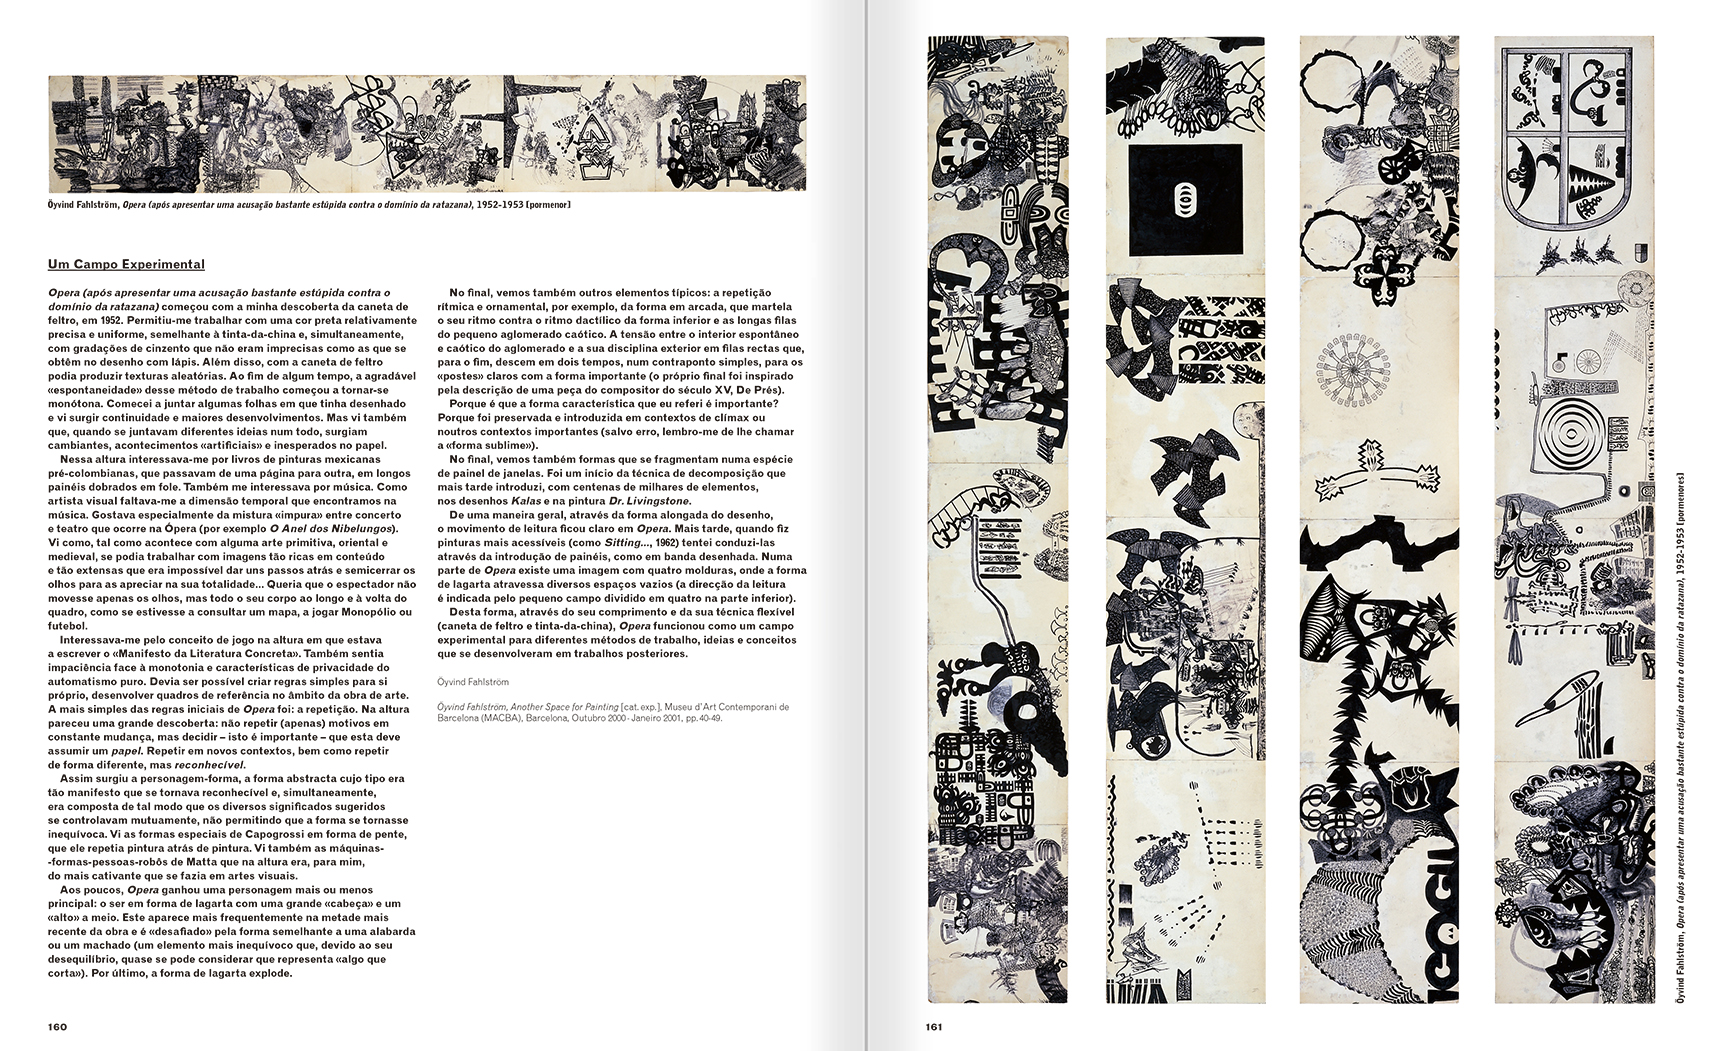 Selection from the catalogue 'A Theater without Theater', pages 160 and 161